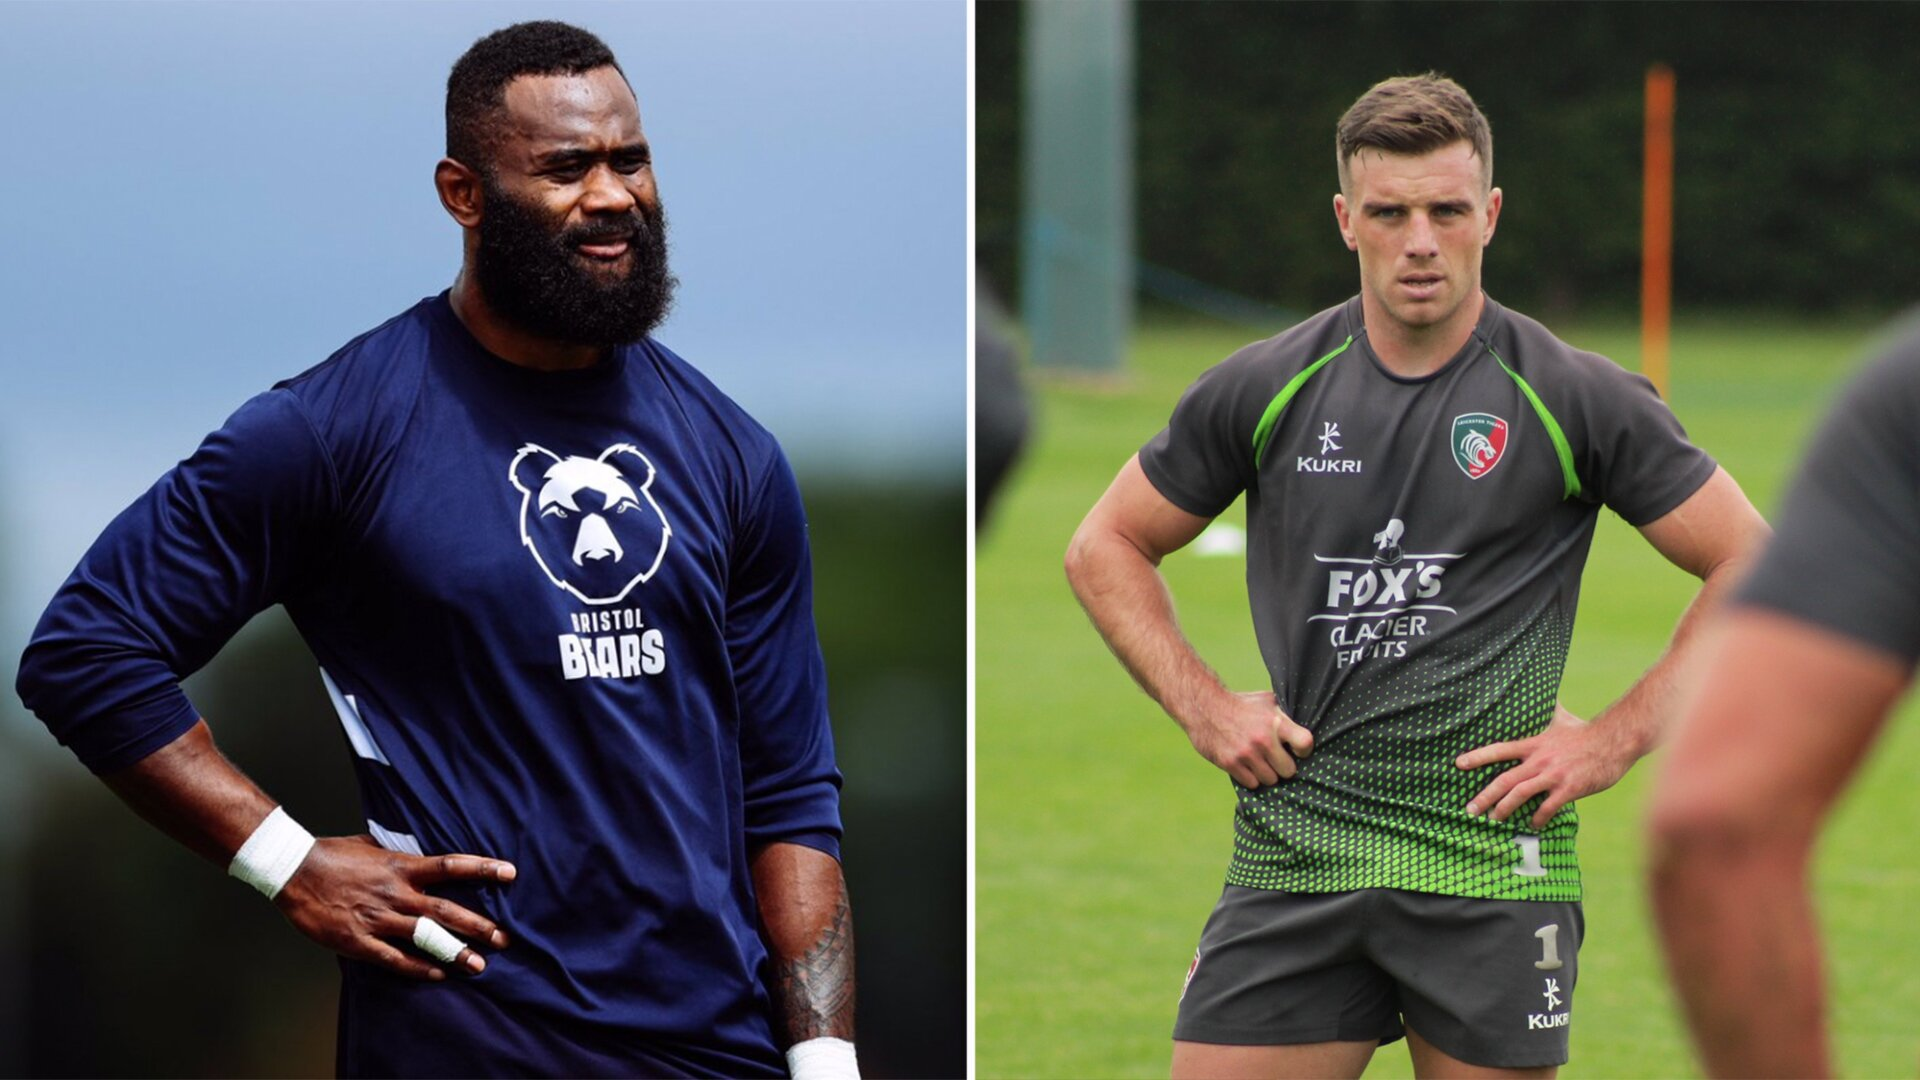 Hype growing as Premiership Rugby clubs return to full training - Footage and videos